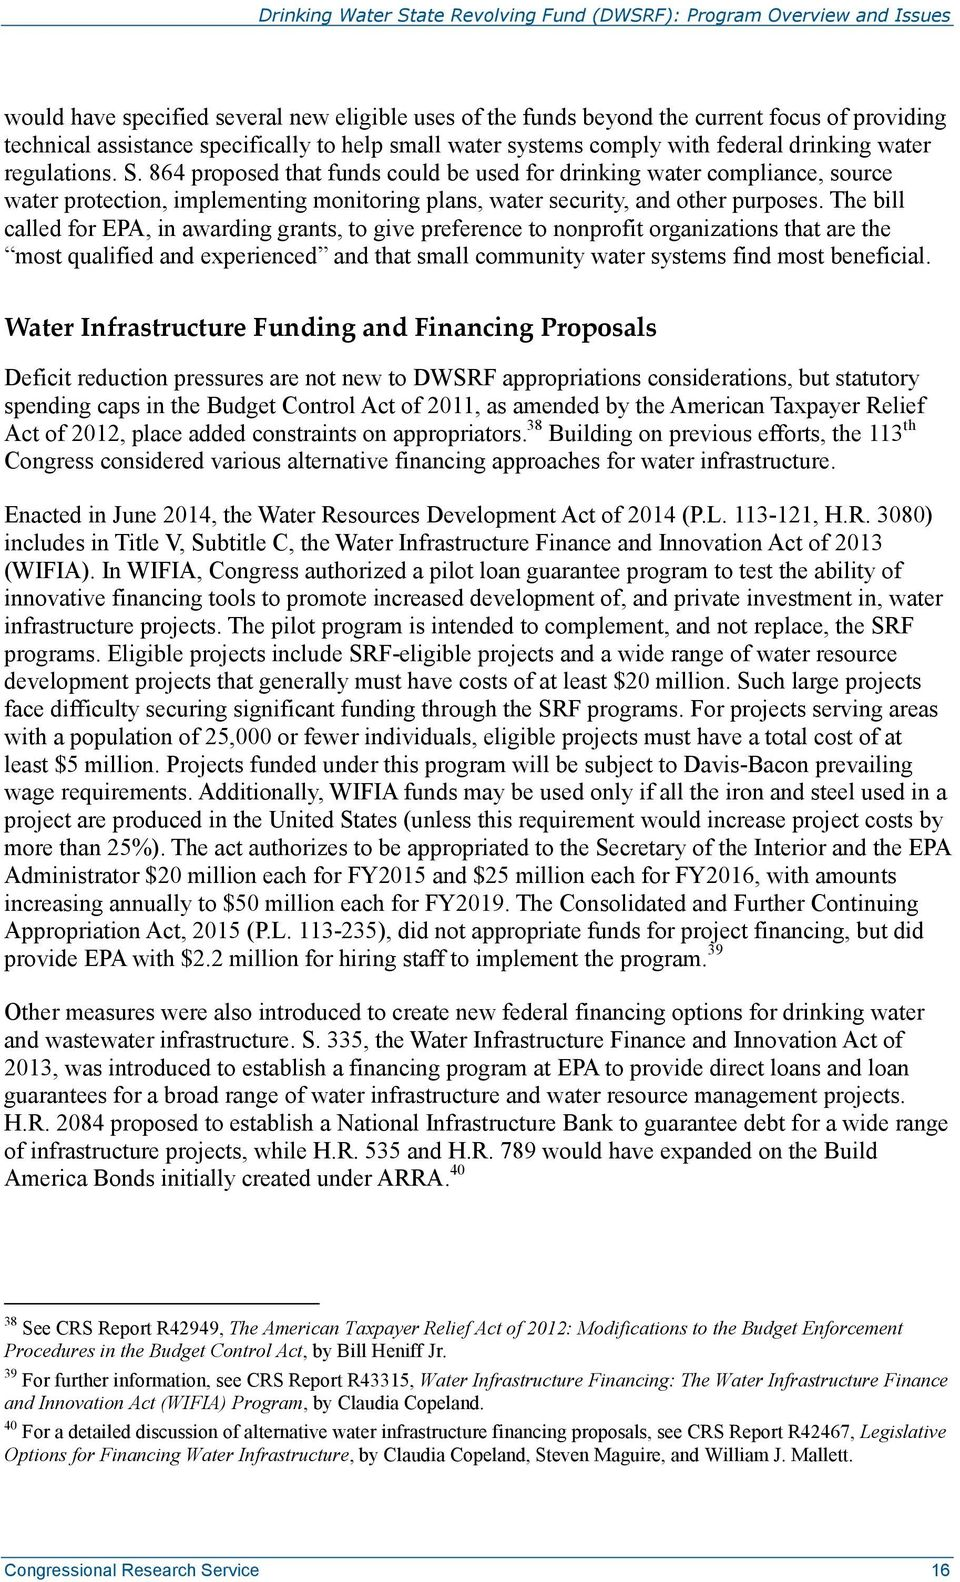 The bill called for EPA, in awarding grants, to give preference to nonprofit organizations that are the most qualified and experienced and that small community water systems find most beneficial.